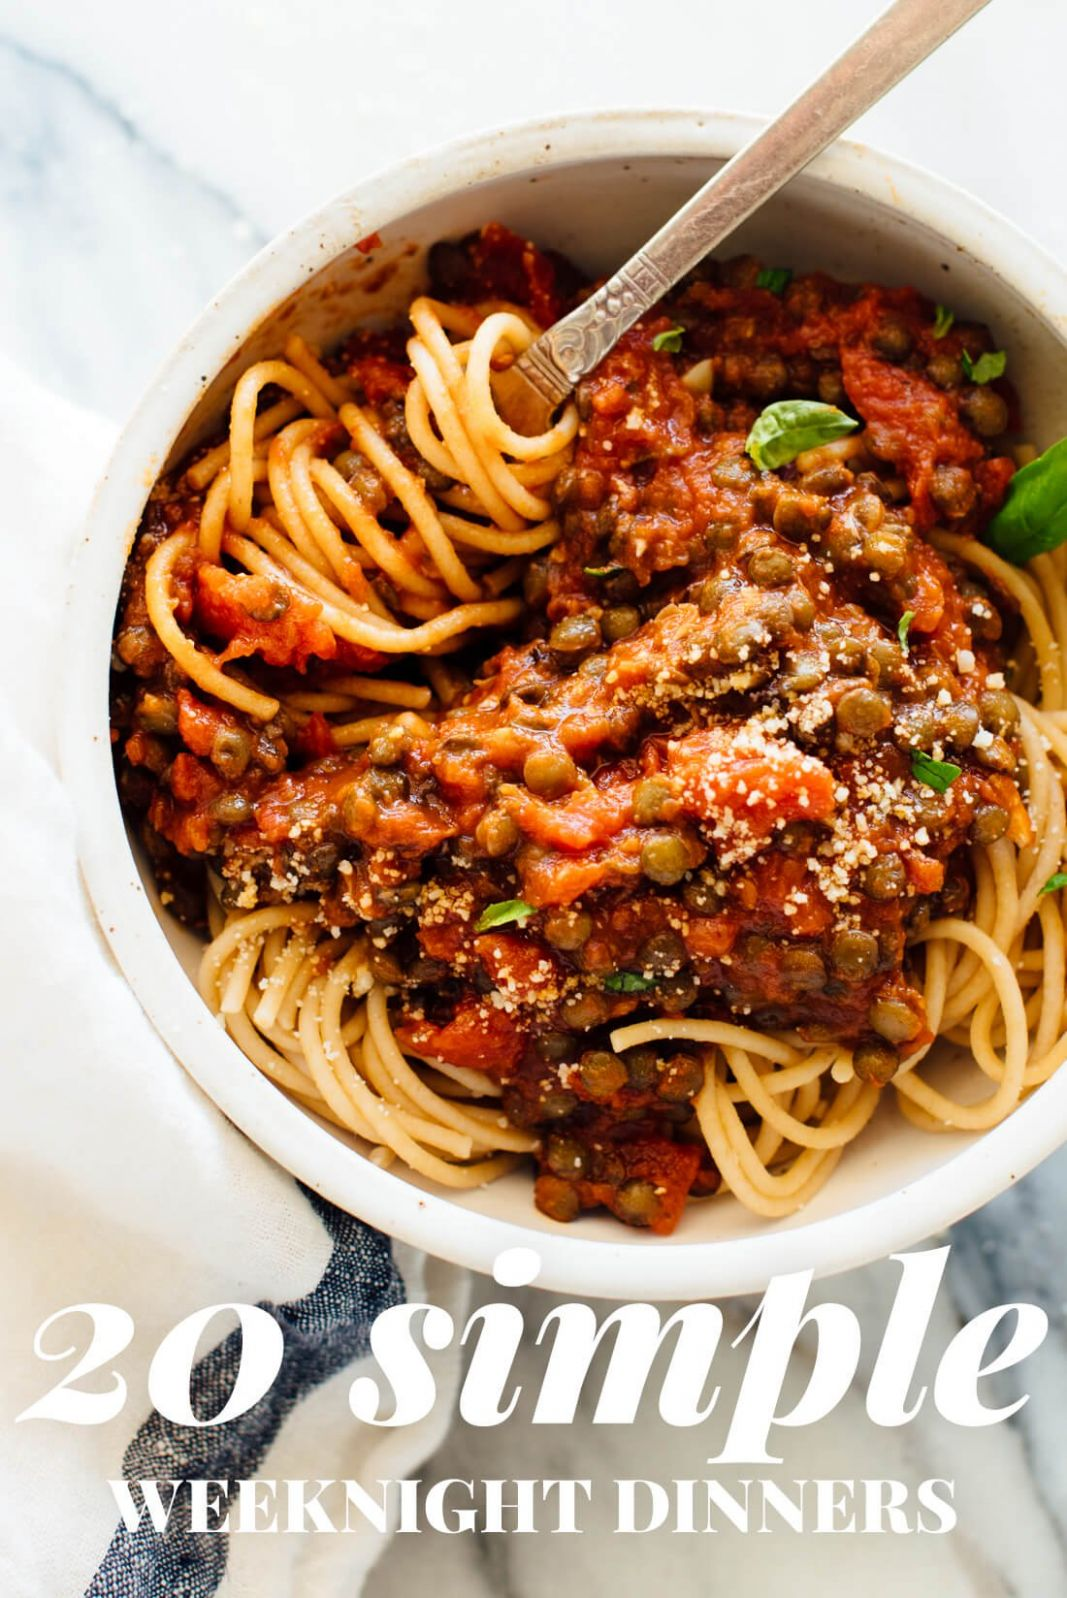 12 Simple Vegetarian Dinner Recipes - Cookie and Kate - Recipes Vegetarian Fast